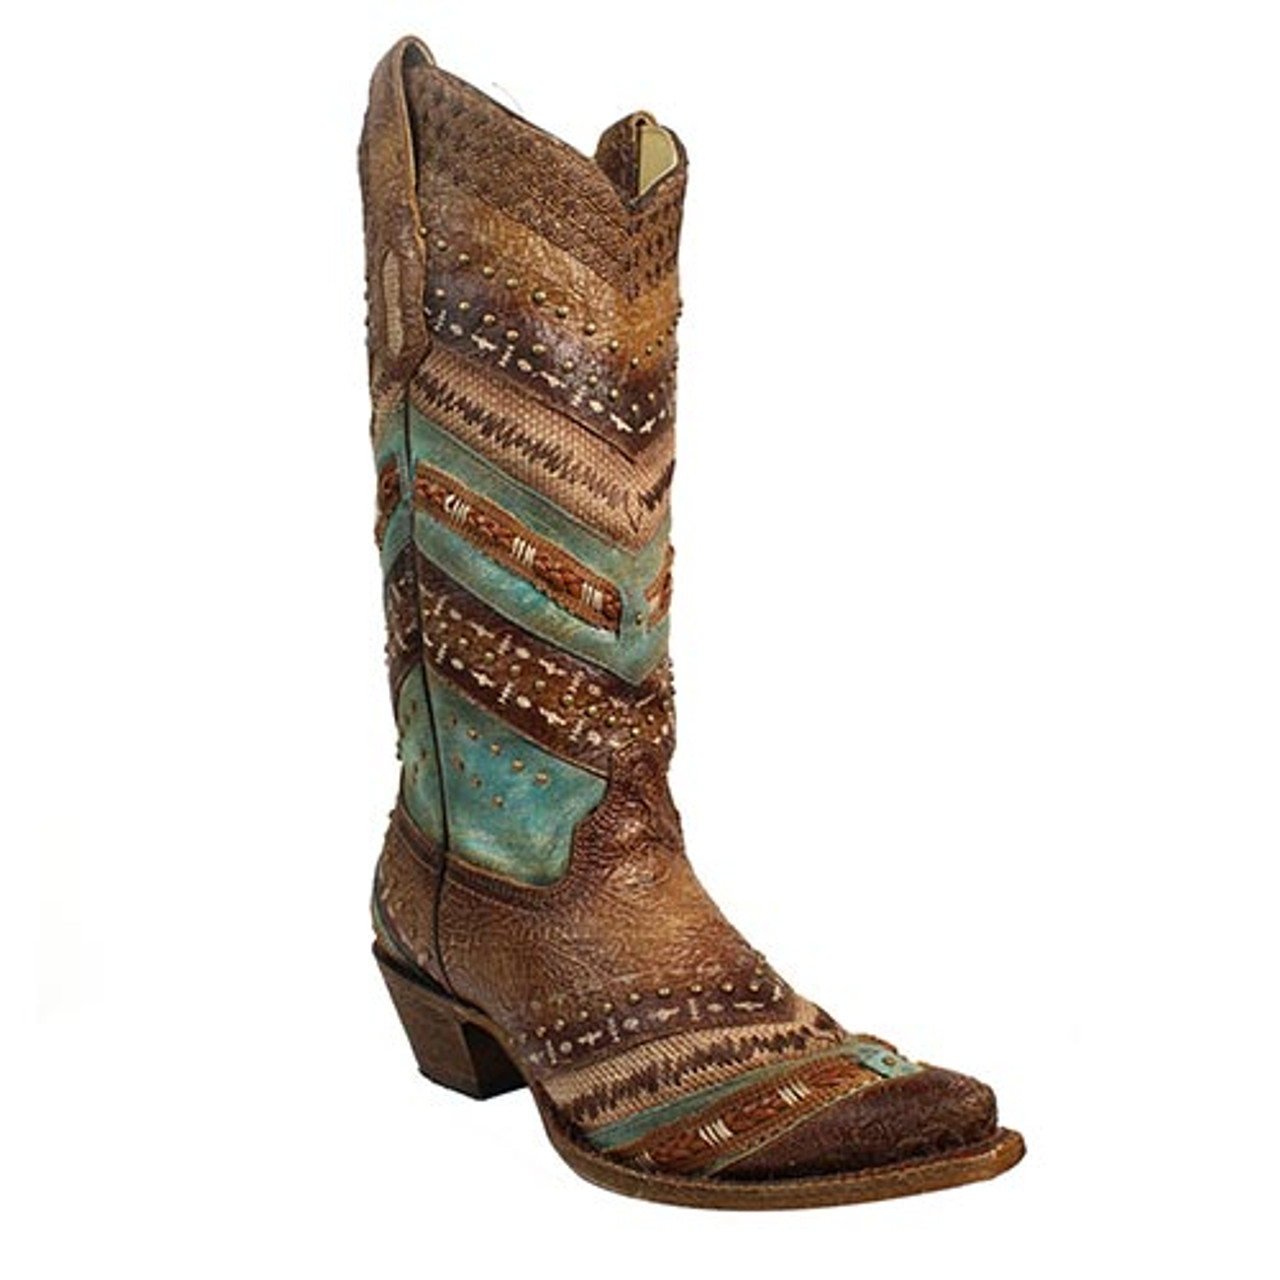 05cd0a8d08a Corral Women's Boots - Turquoise and Brown - Embroidery & Studded - Snip Toe